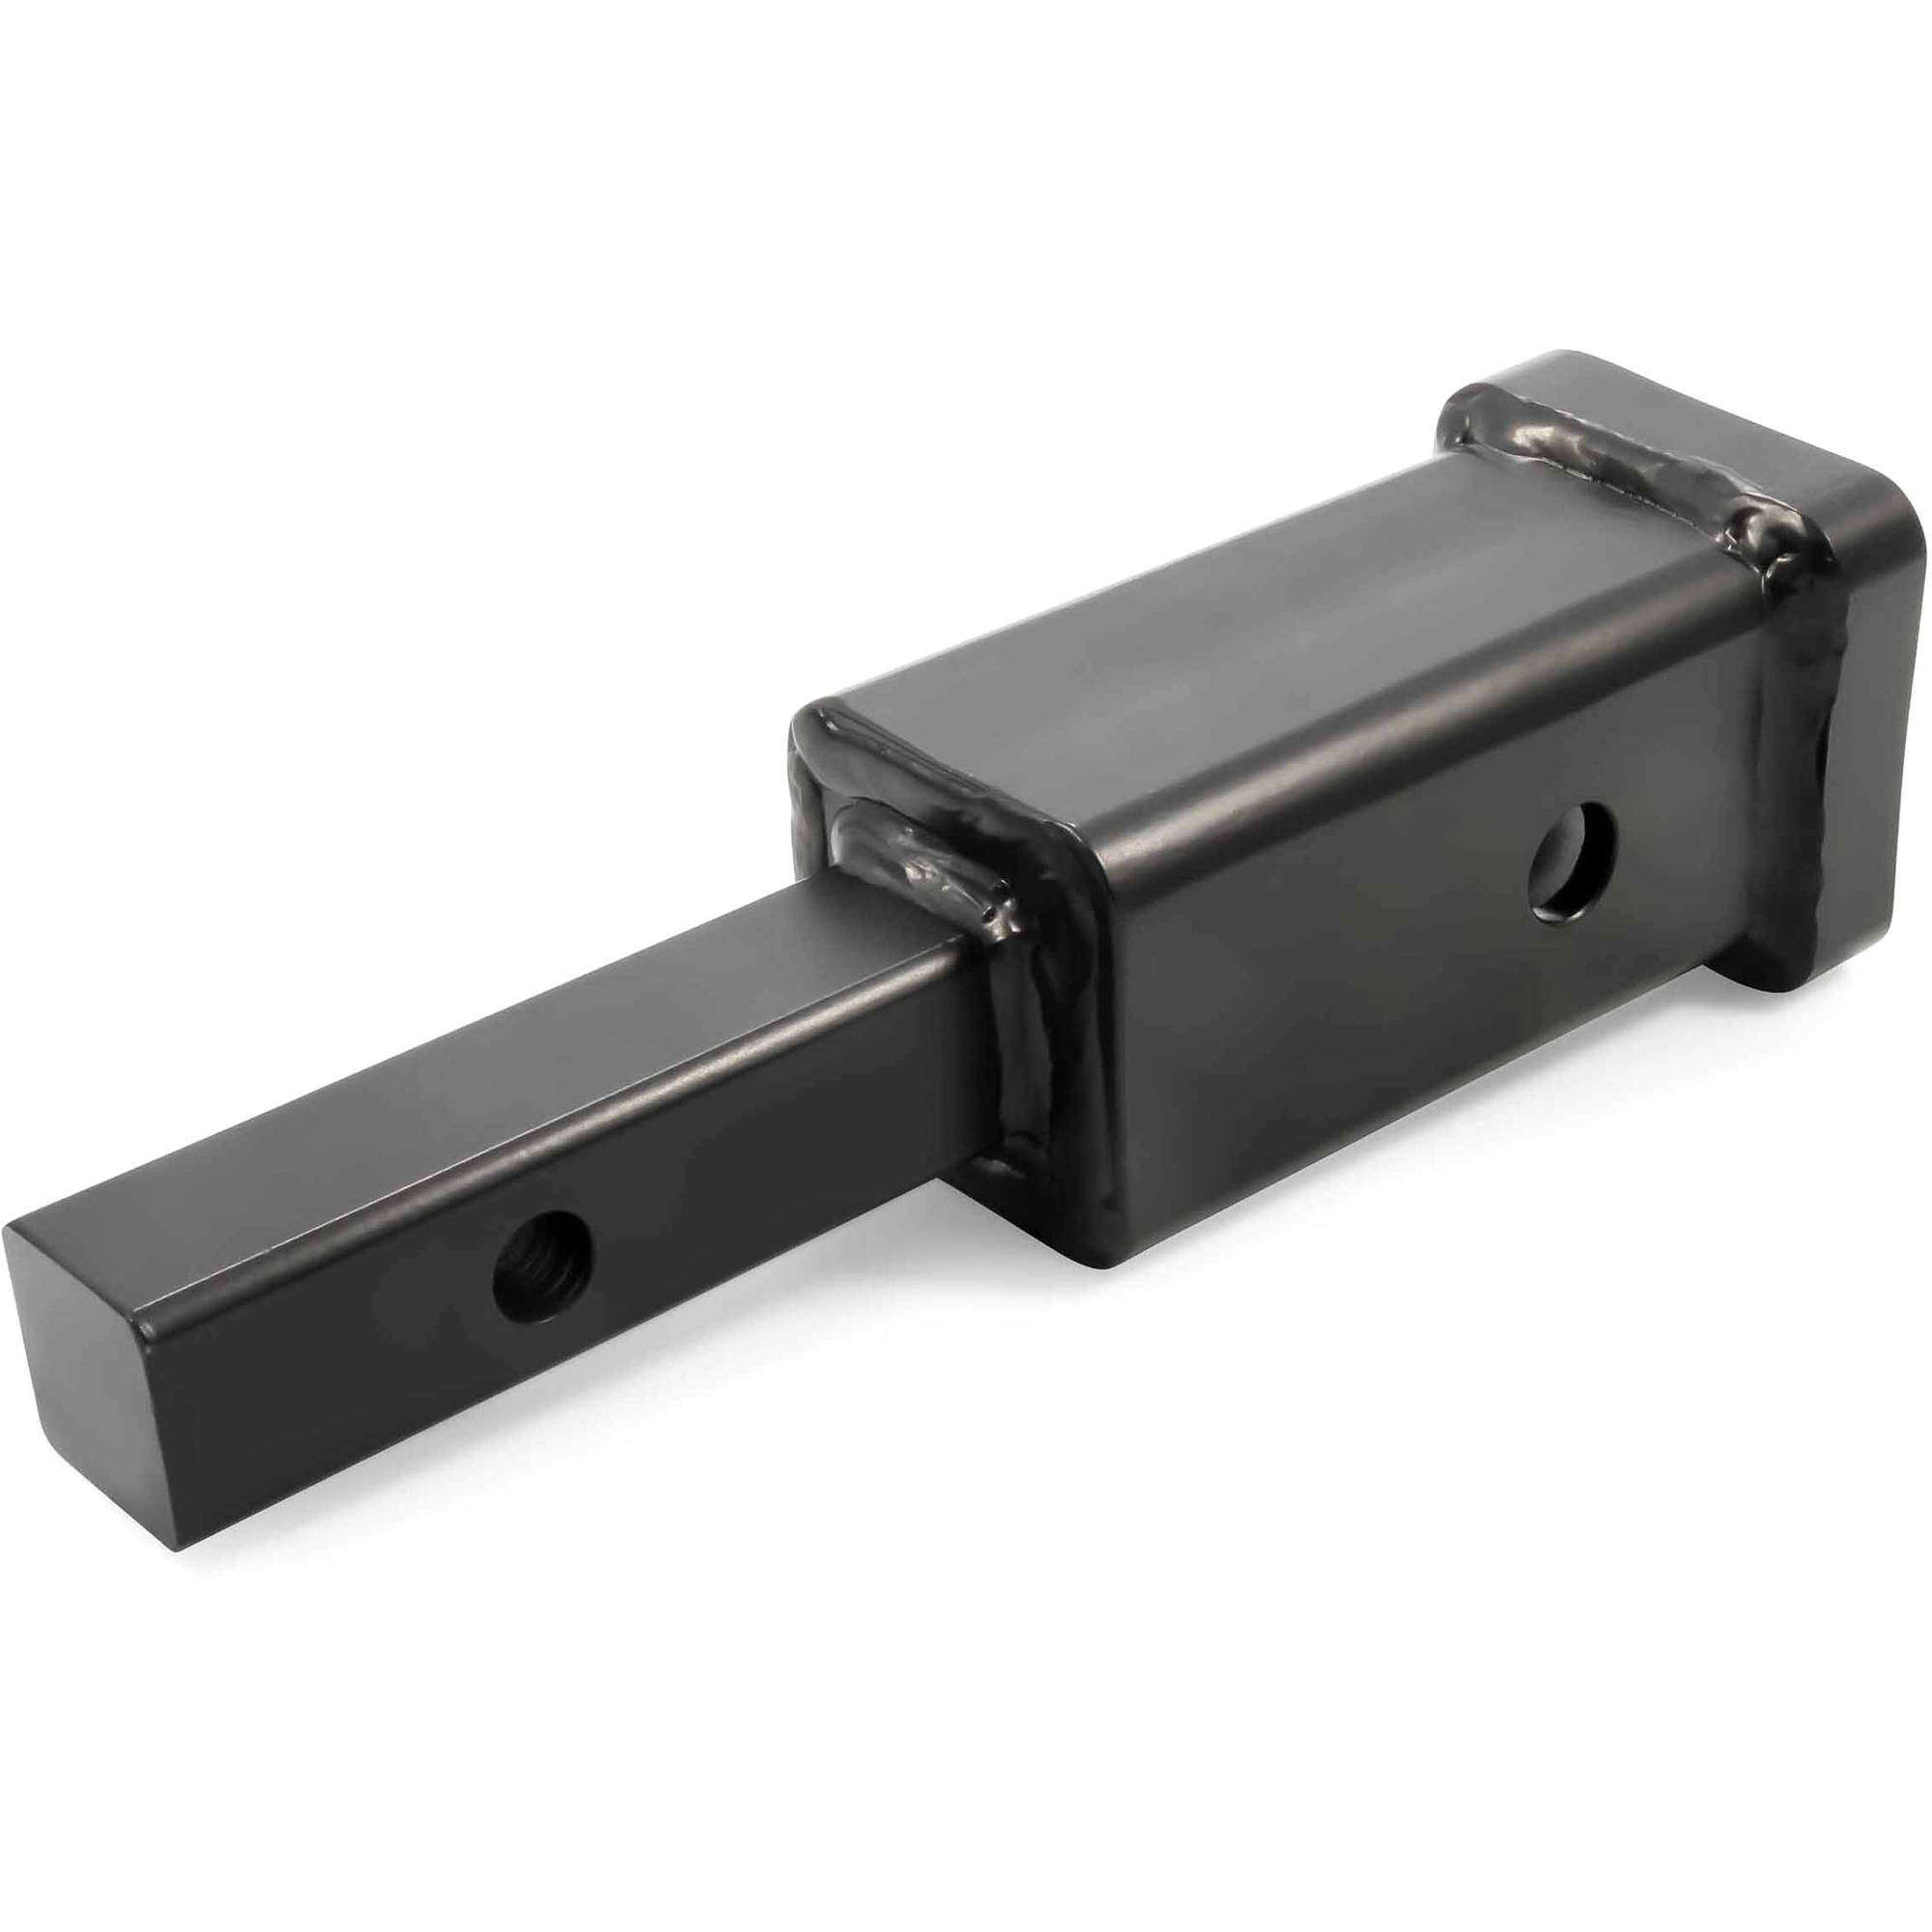 Eaz-Lift 48471 1 4 to 2 Hitch Adapter